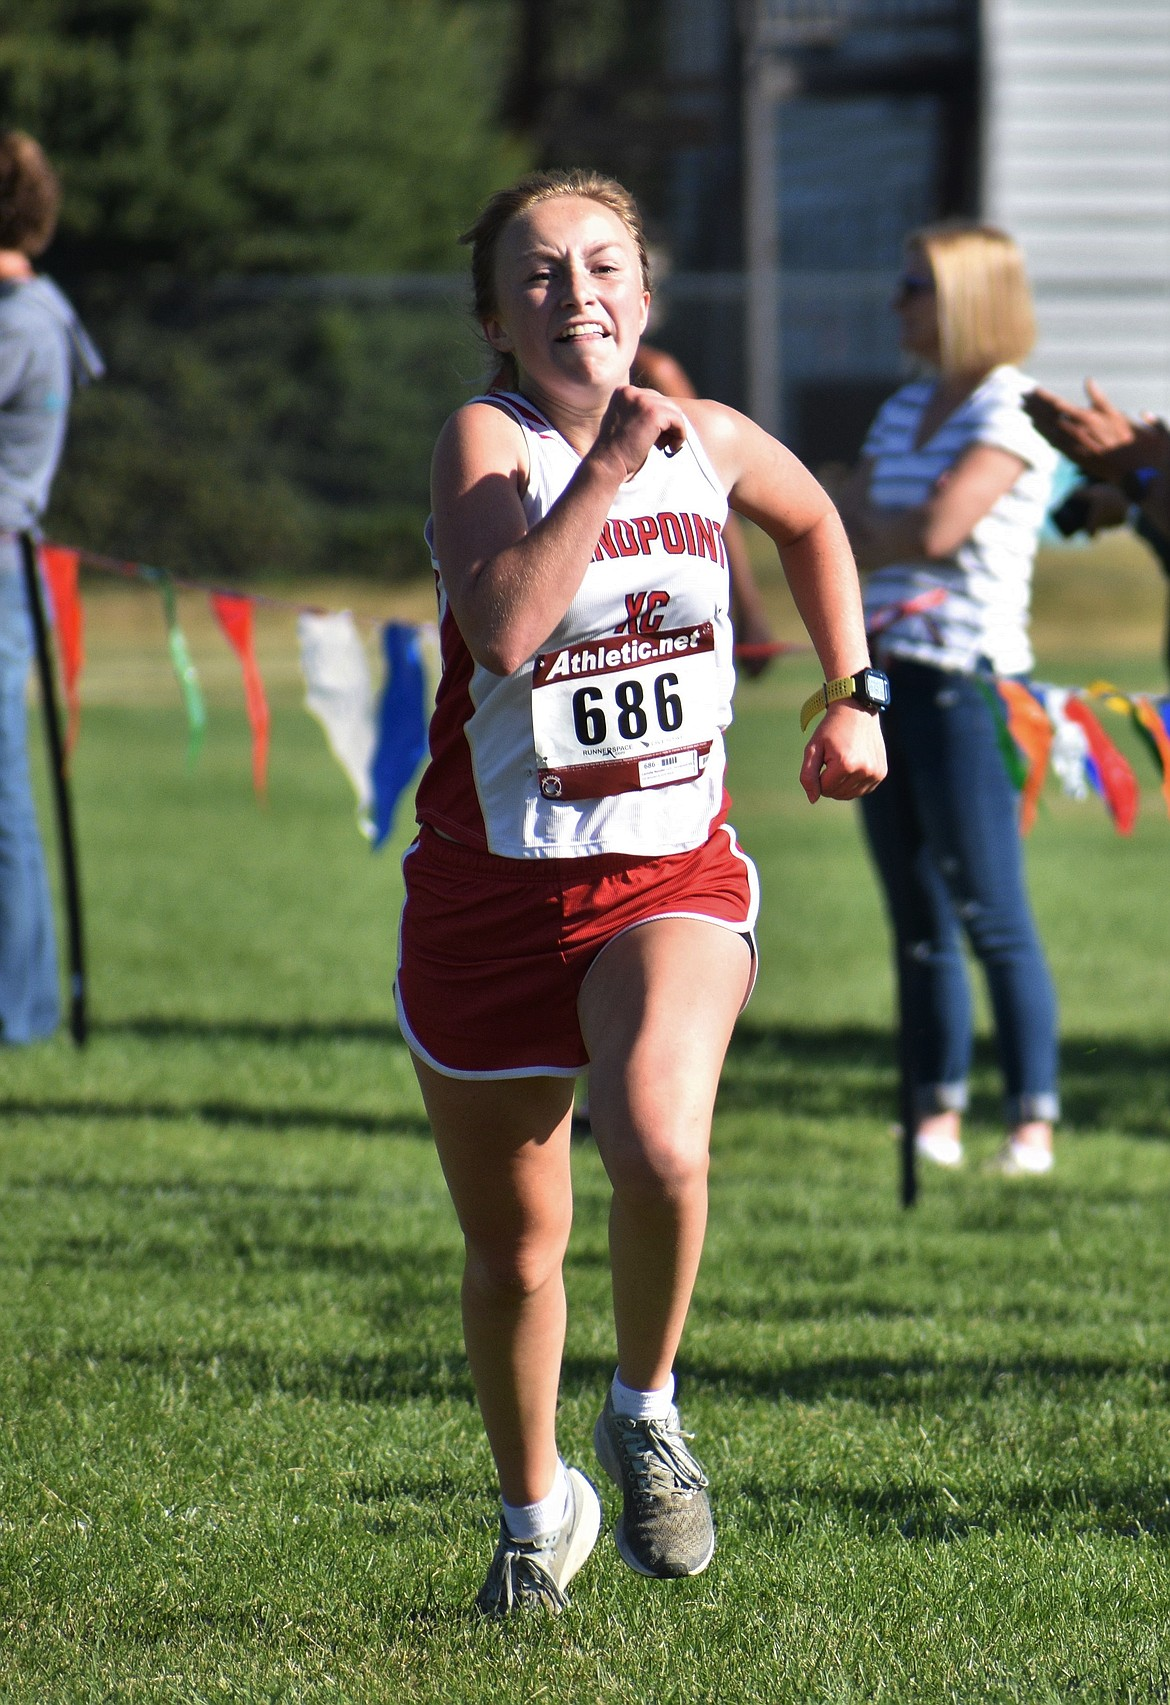 Senior captain Camille Neuder nears the finish line during Friday's meet at Travers Park.